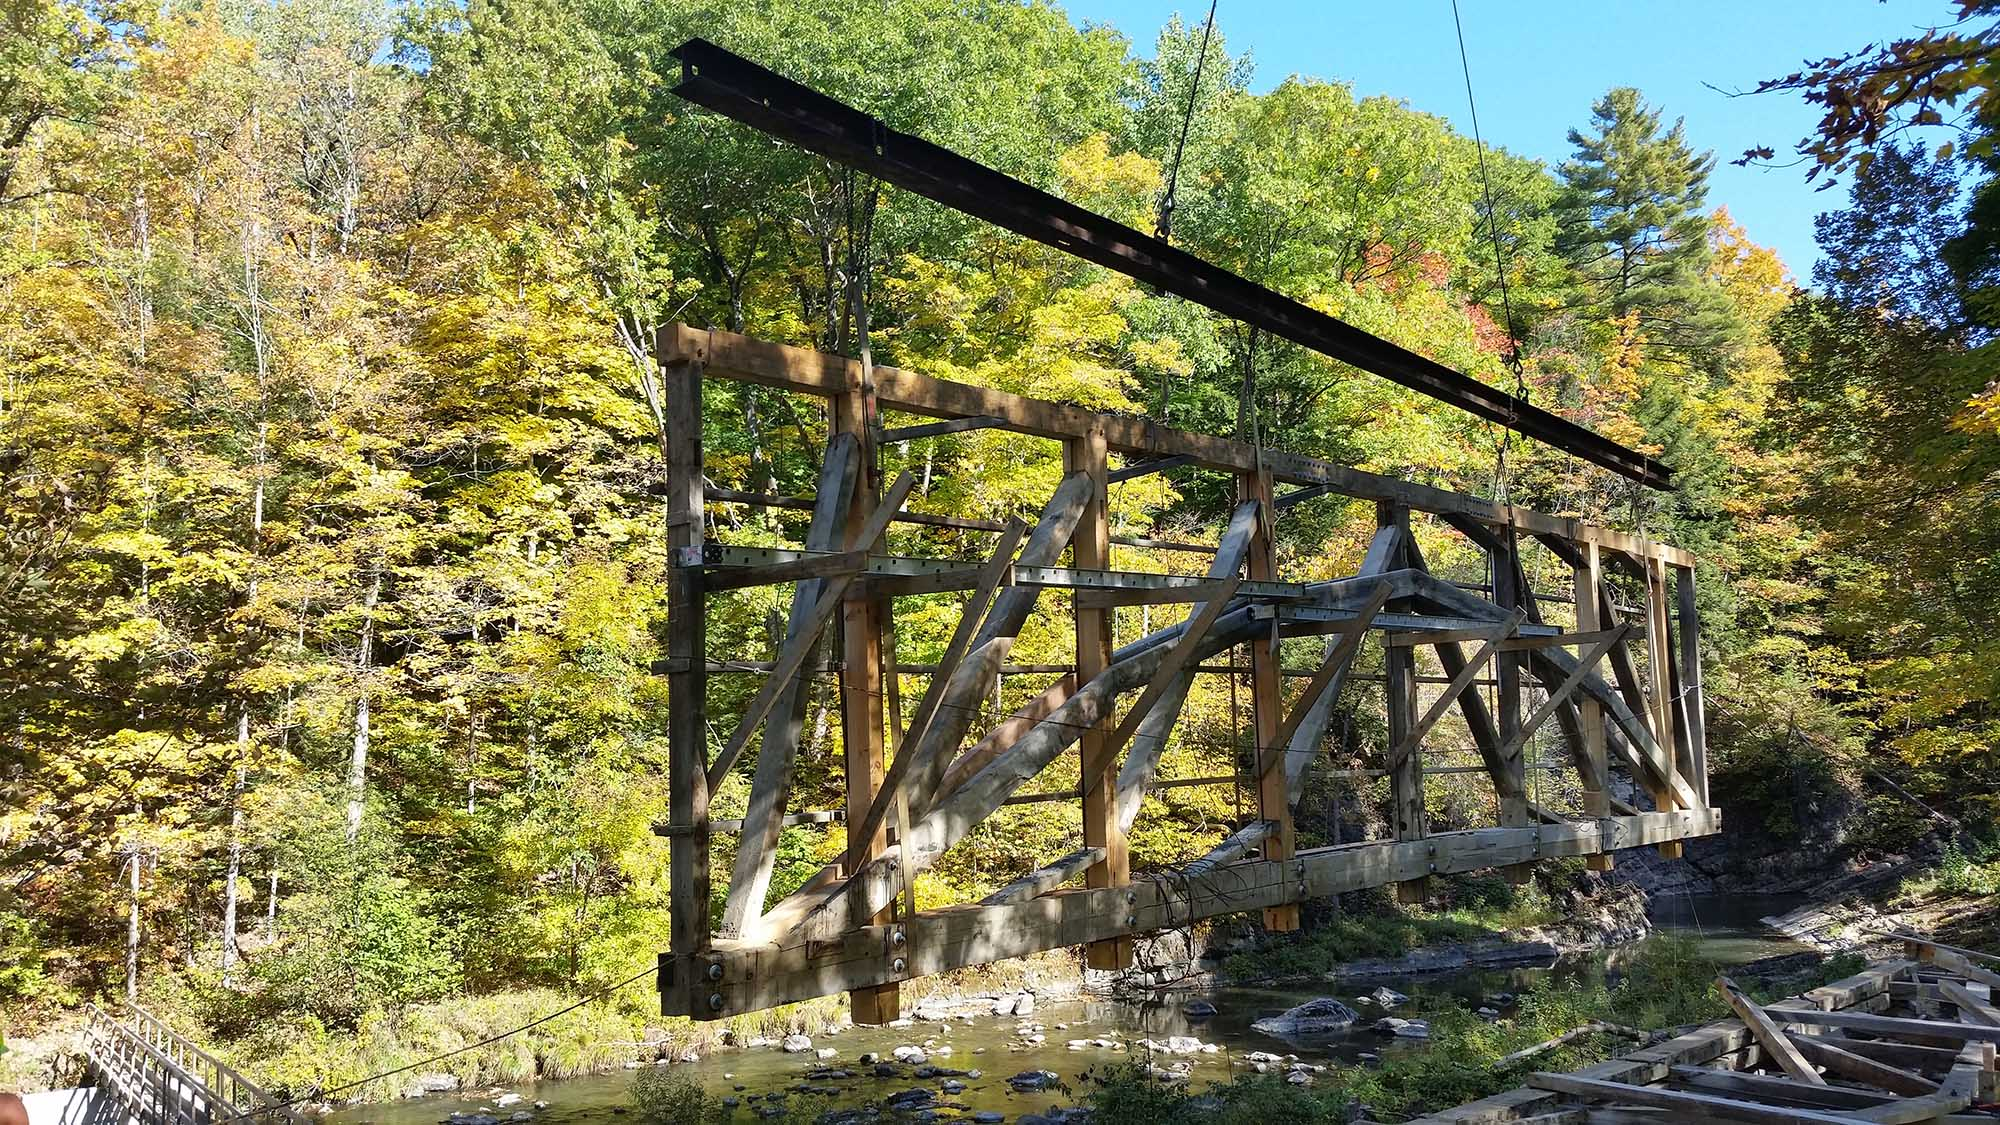 Covered Bridge Construction